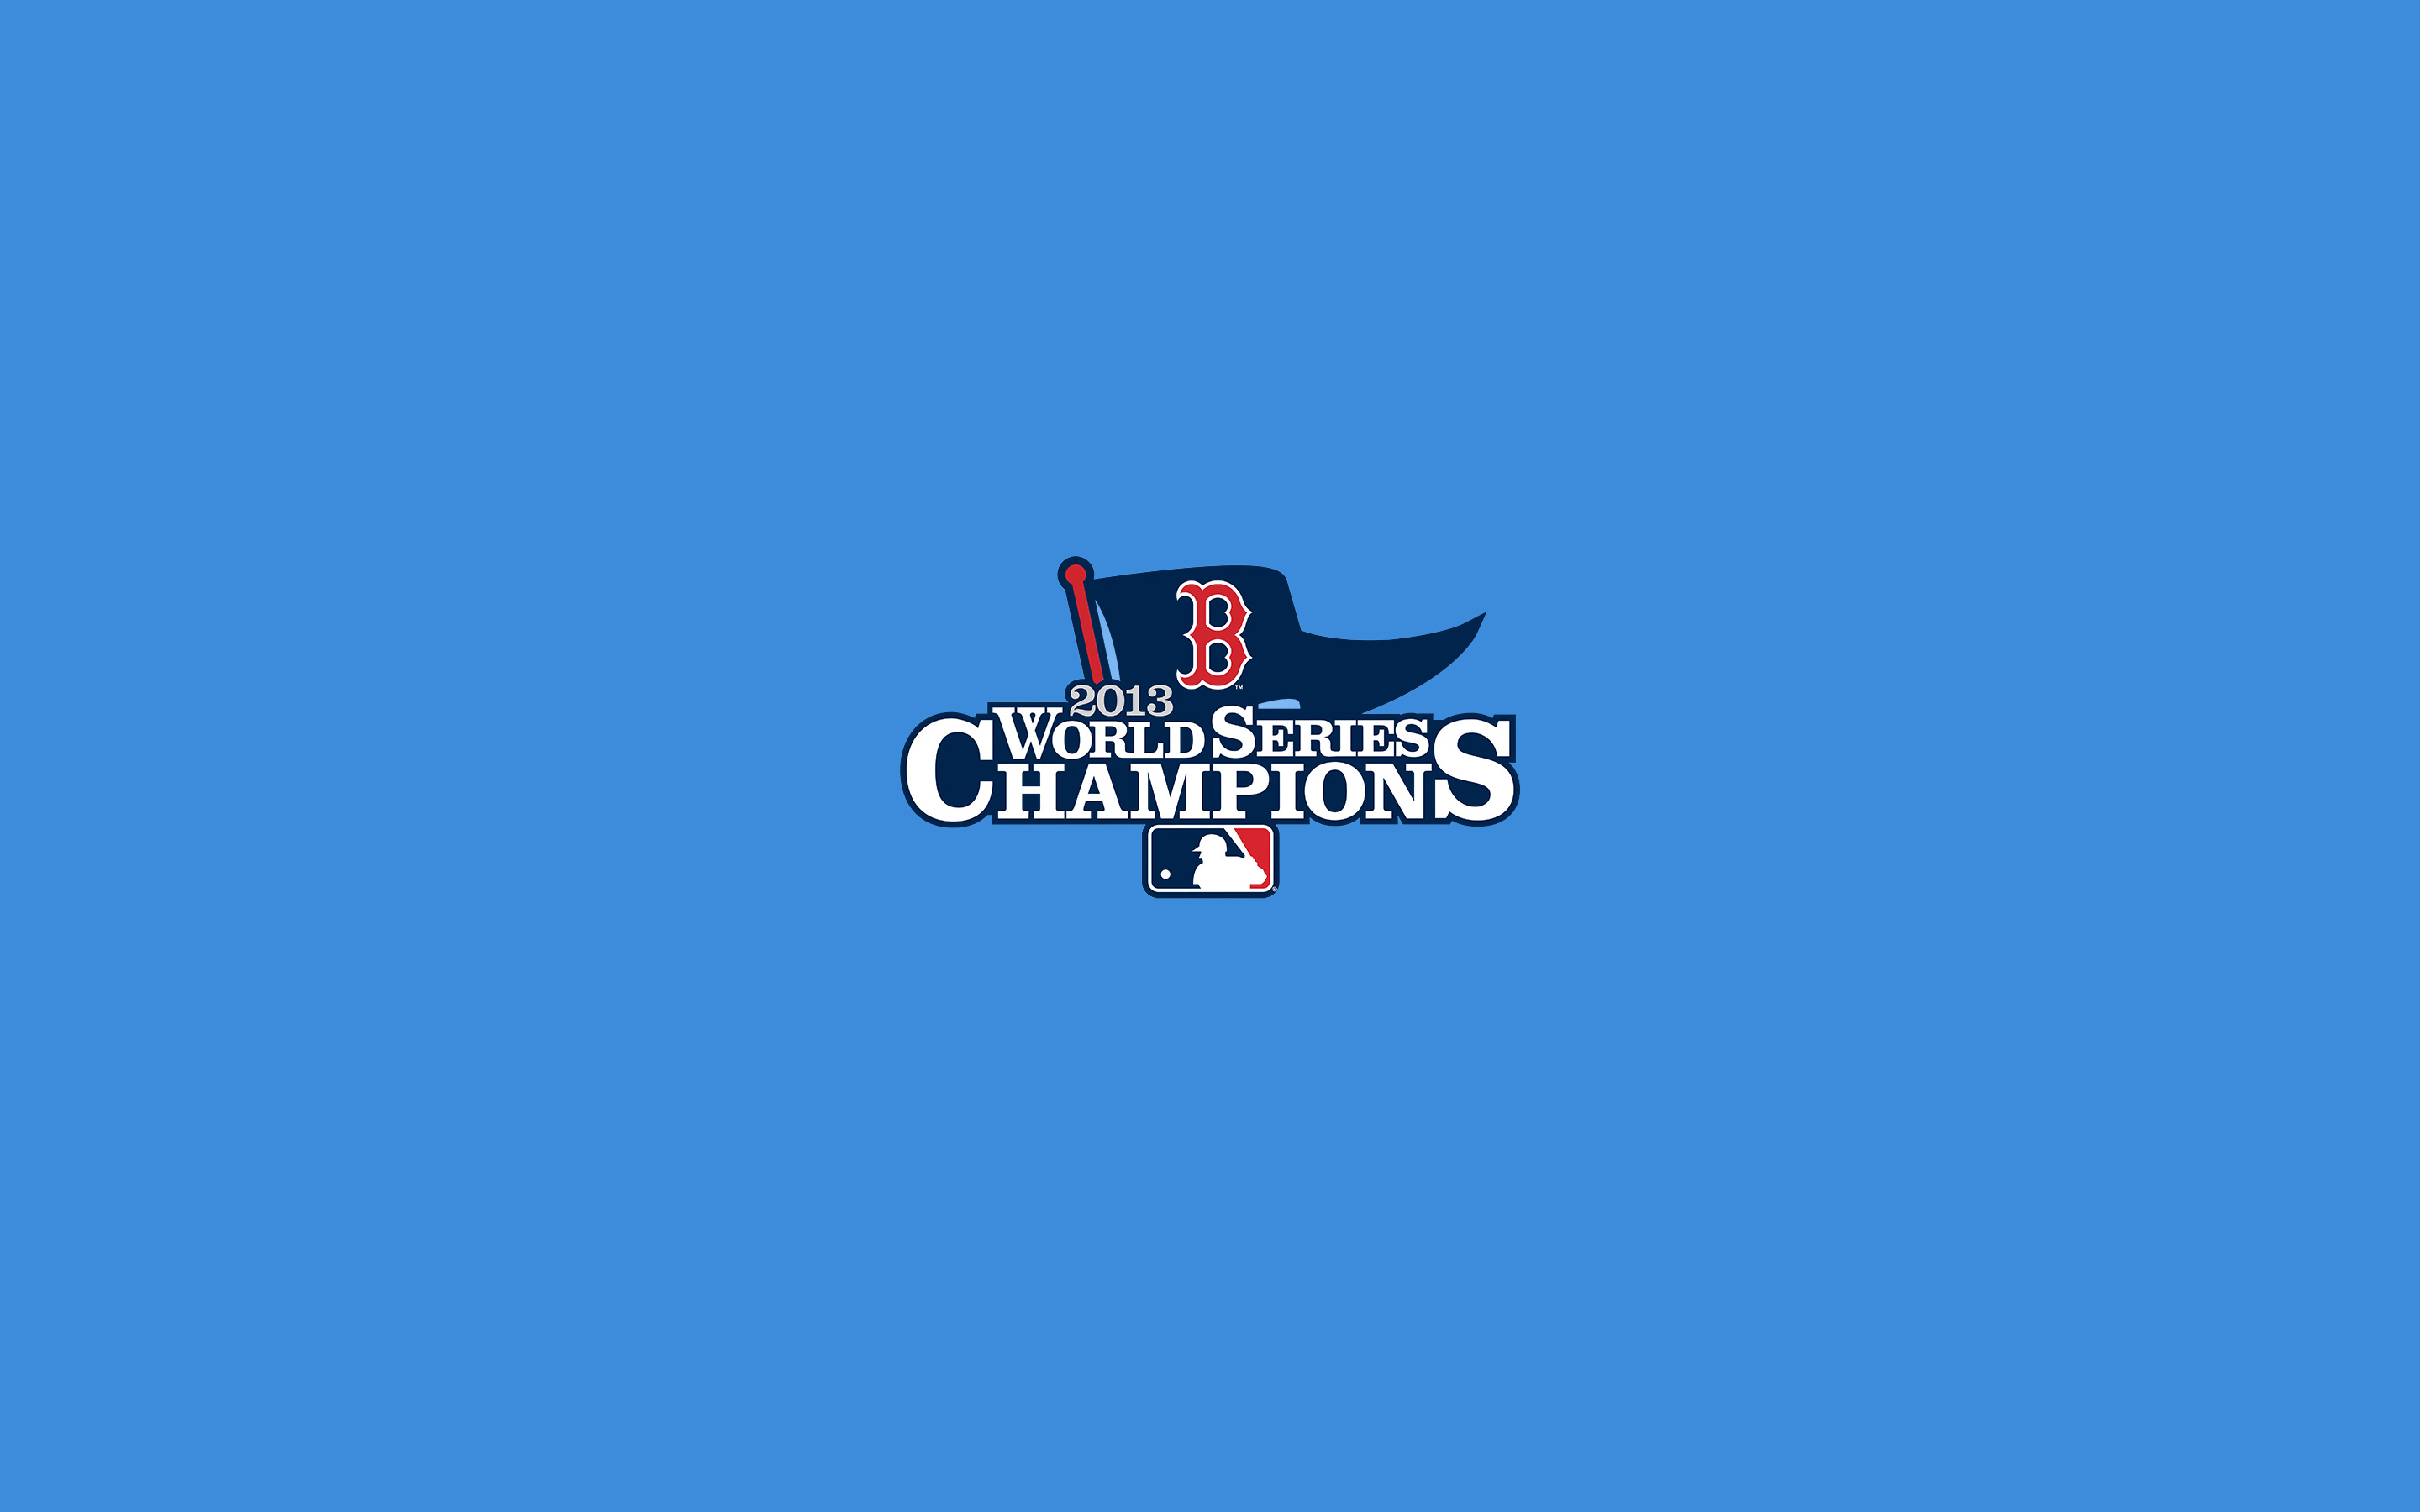 2880x1800 - Boston Red Sox Wallpaper Screensavers 13